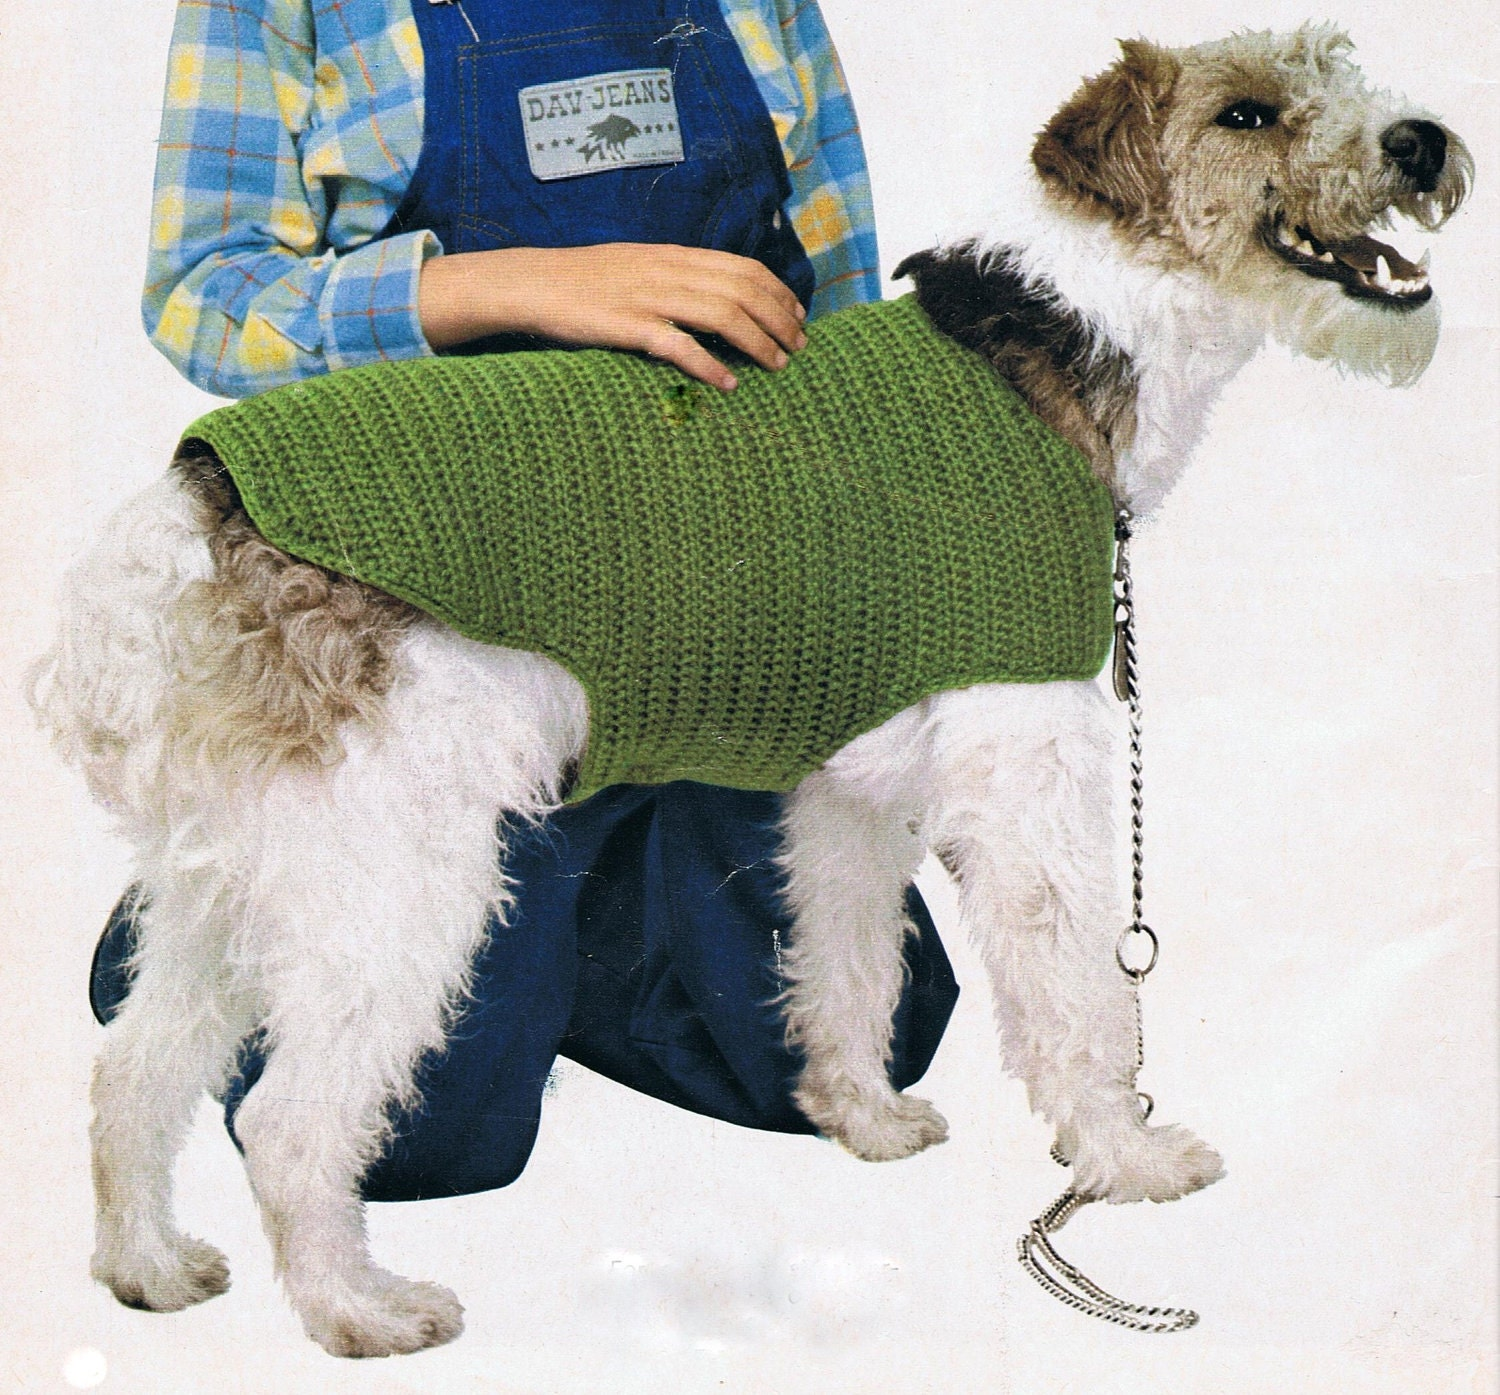 Knitting Pattern For Dog Coat Large : Dog Coat Crochet Pattern PDF Vintage T188 by HeirloomPatterns